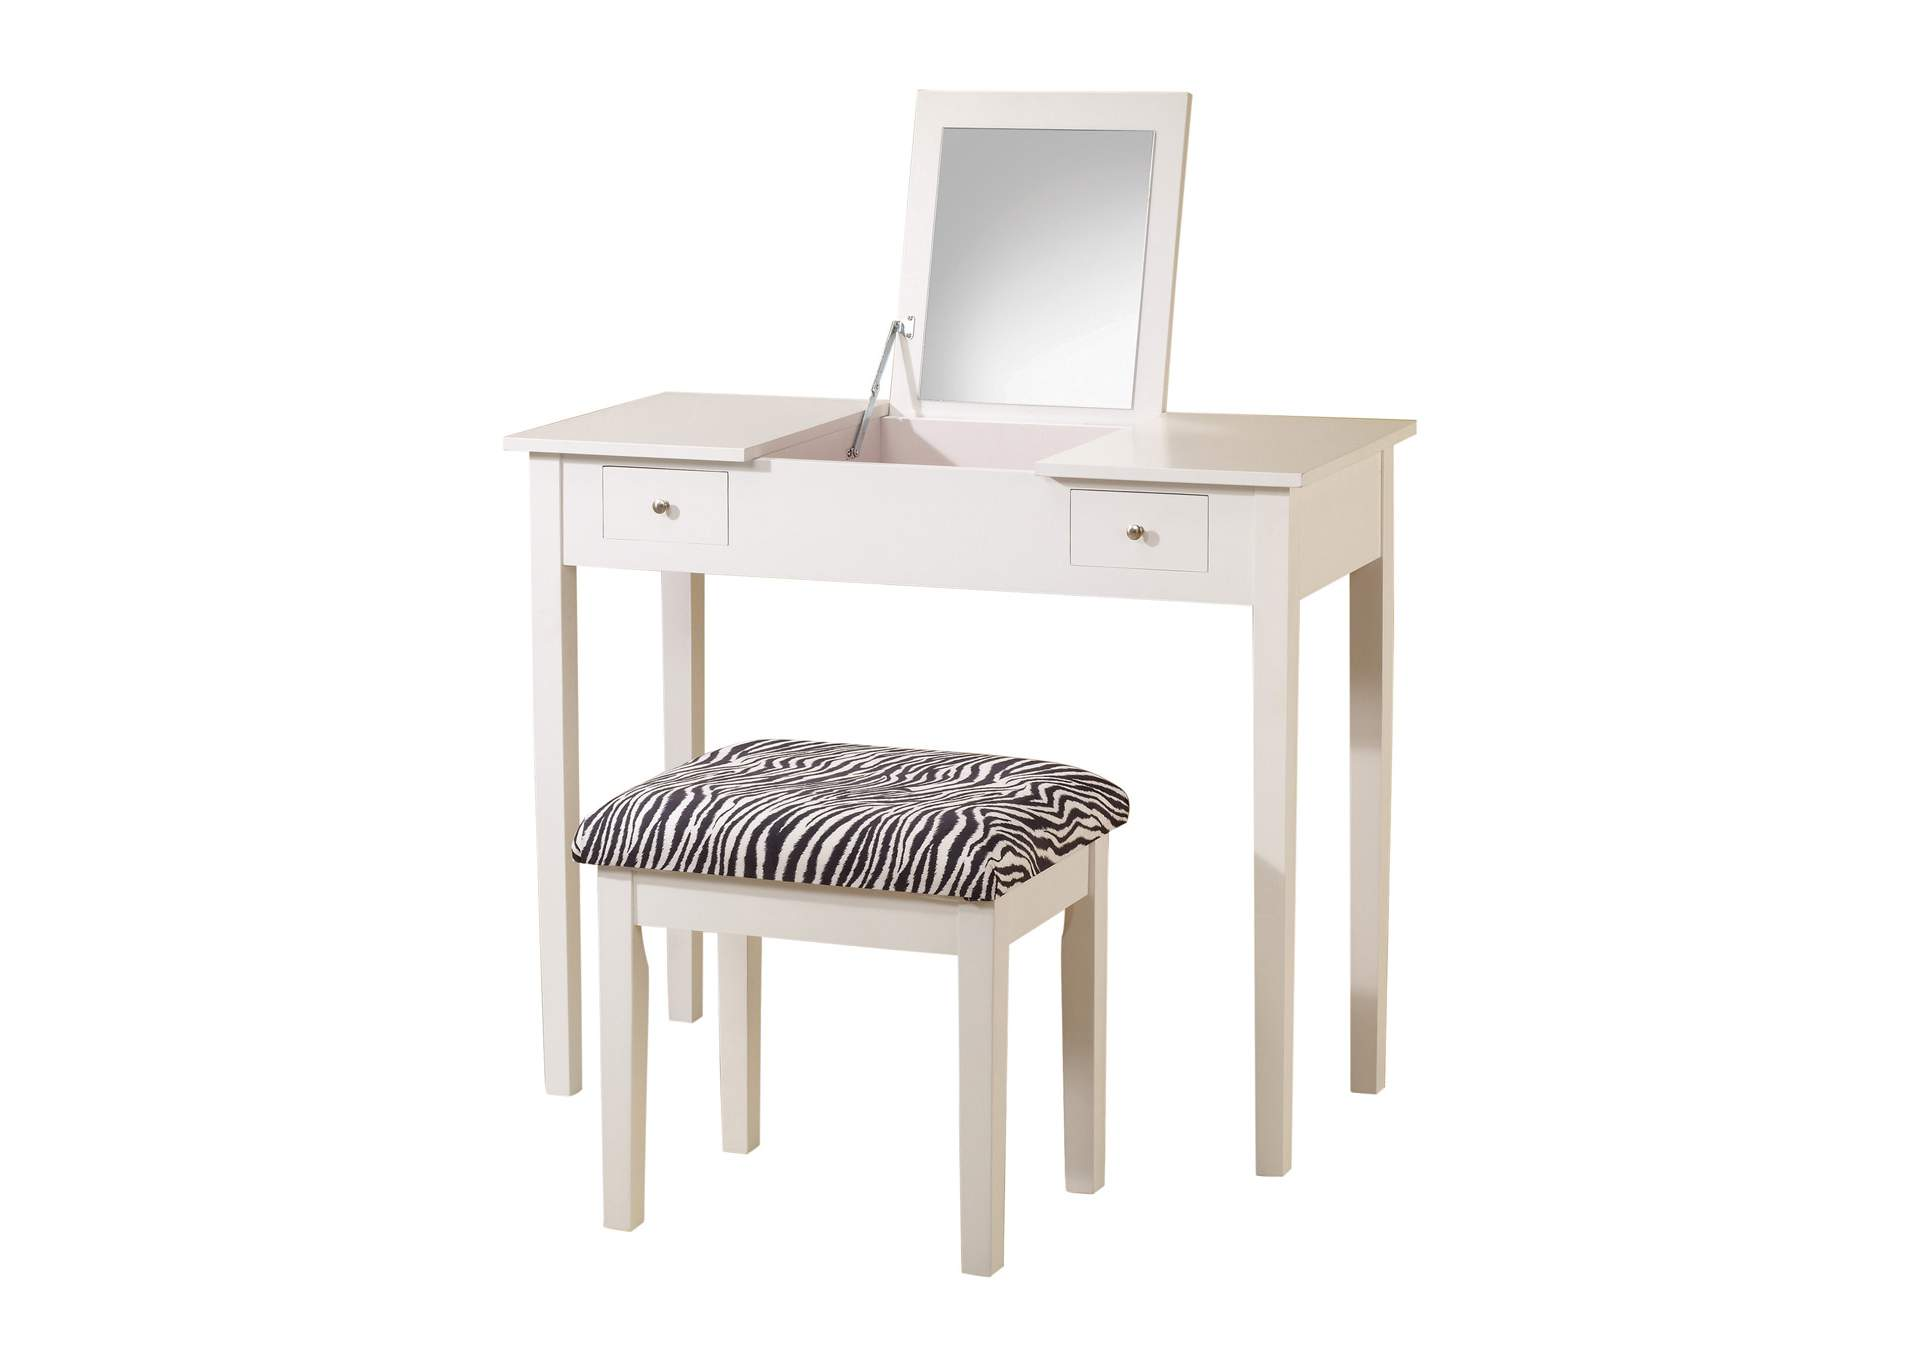 Ebb Casual White Vanity and Upholstered Stool,Coaster Furniture